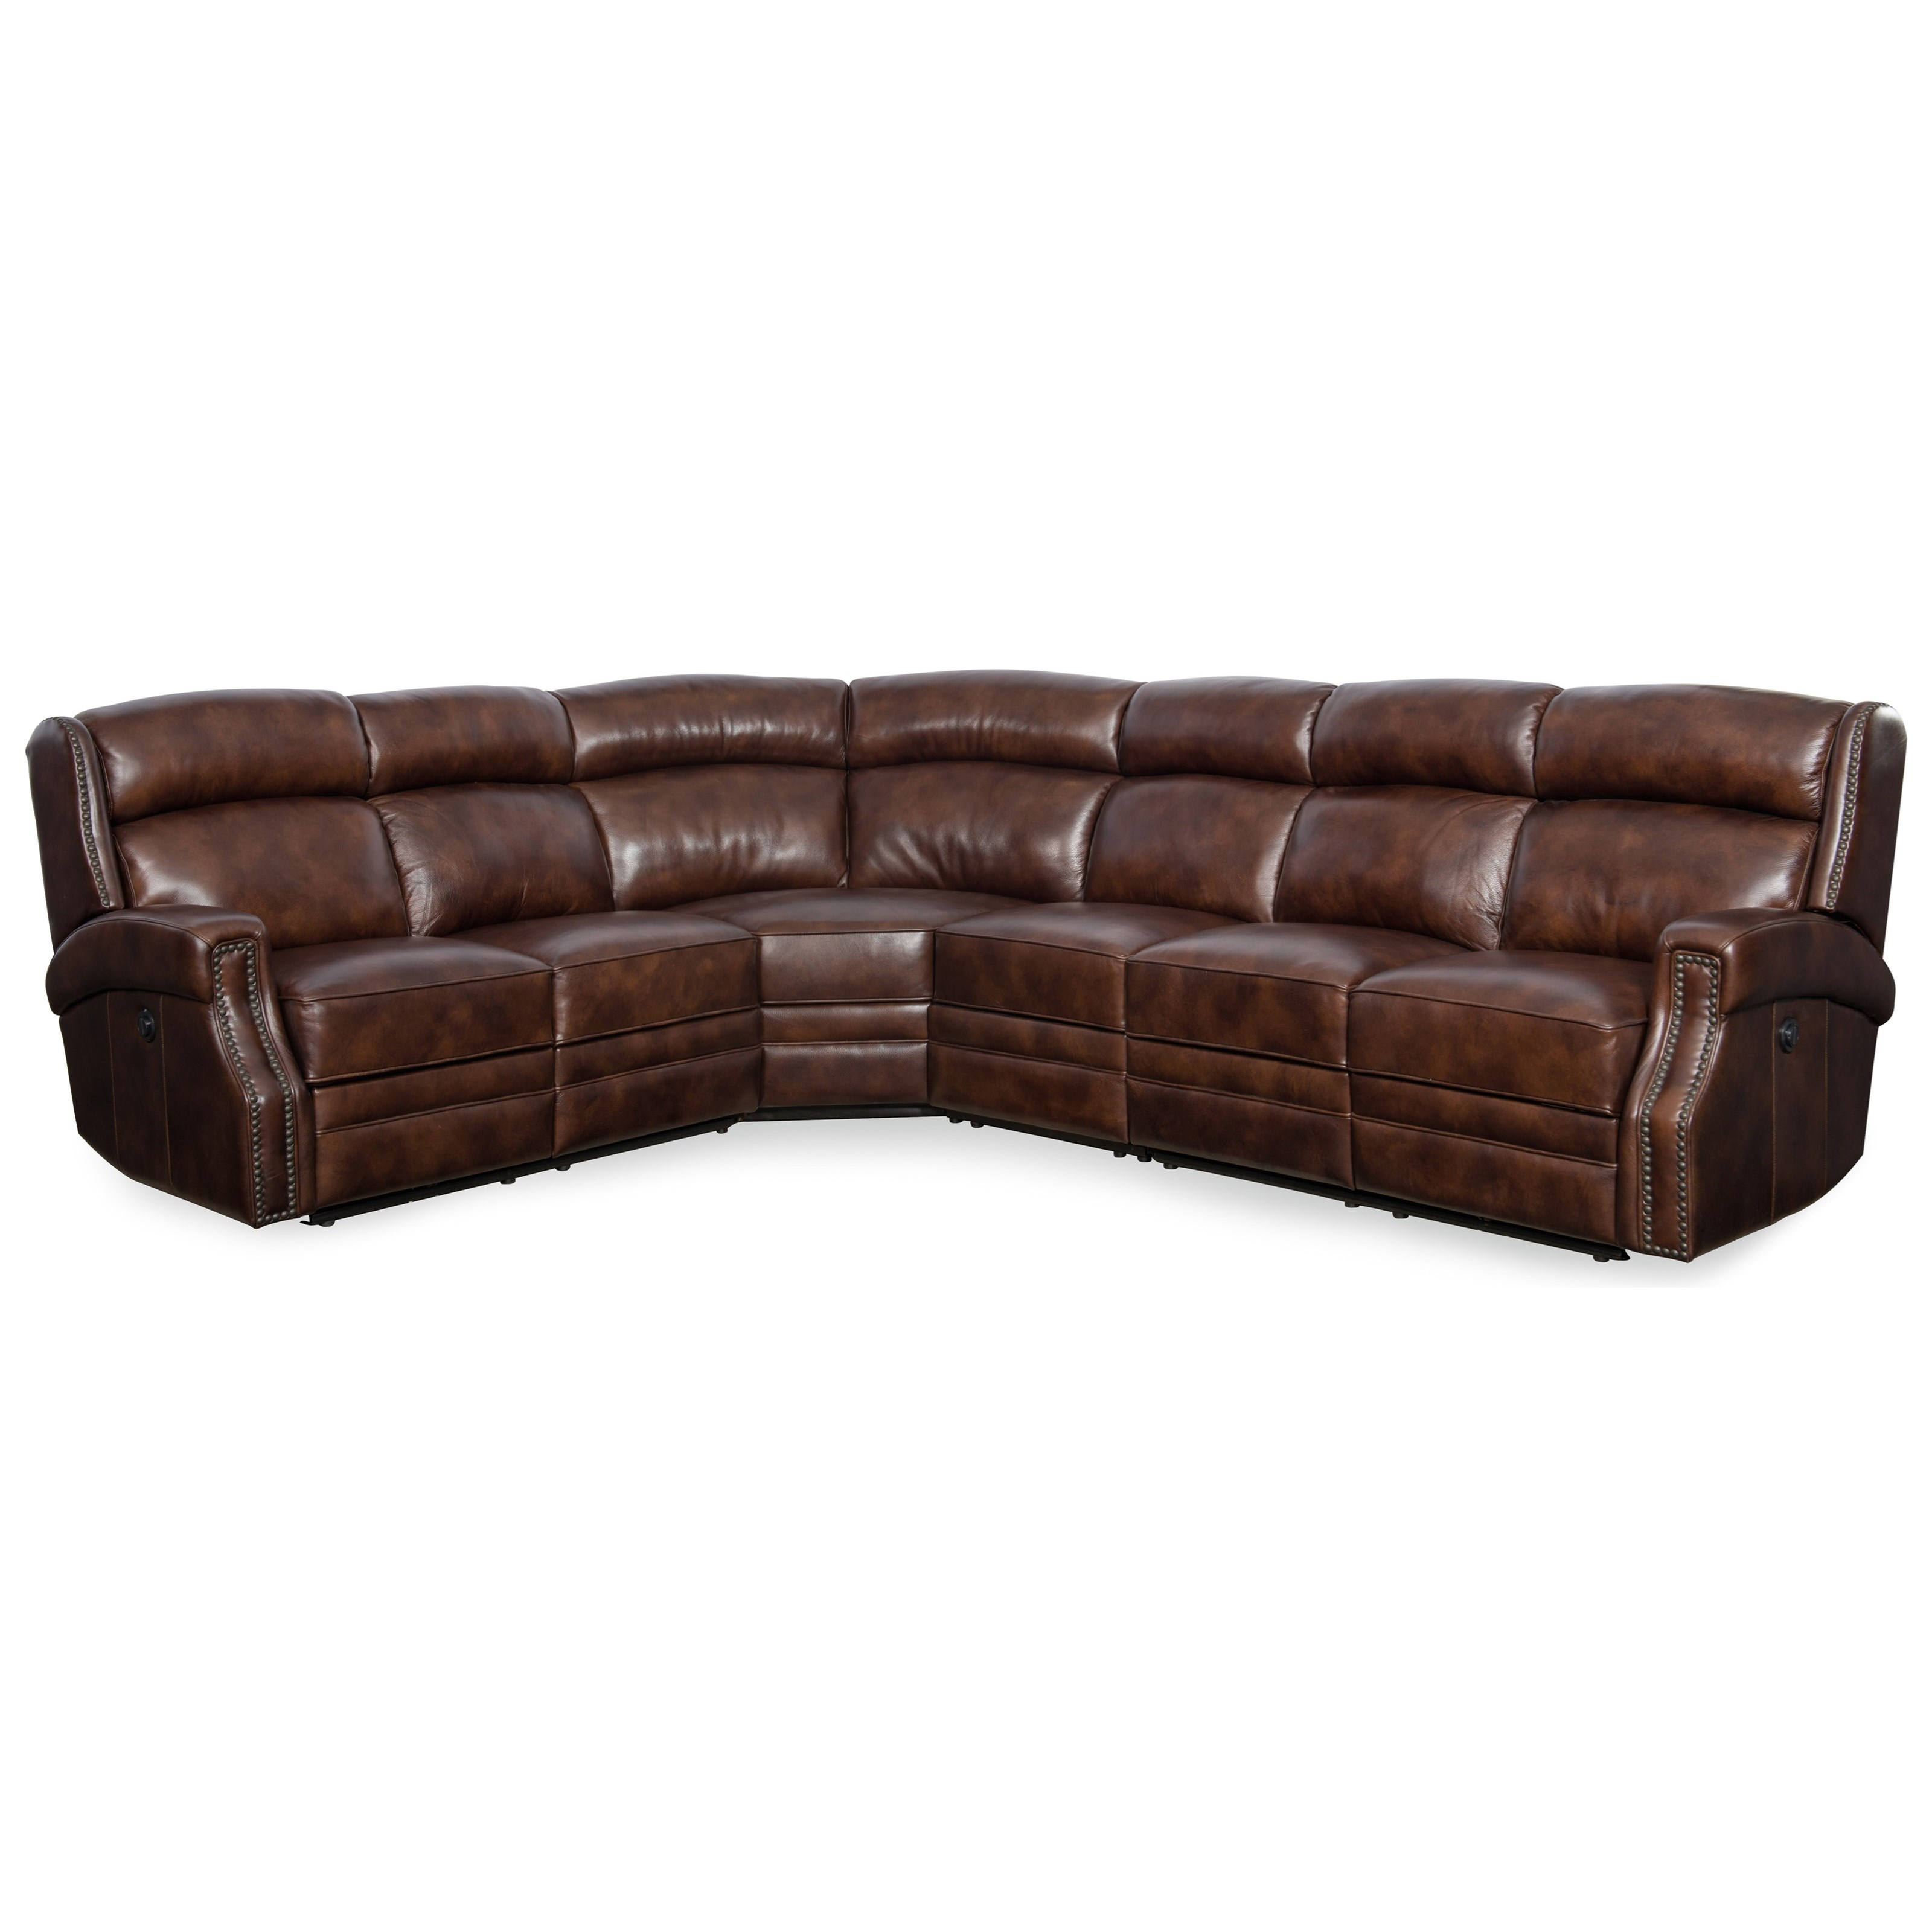 Carlisle LAF Power Motion Loveseat w/Pwr Headrest by Hooker Furniture at Baer's Furniture